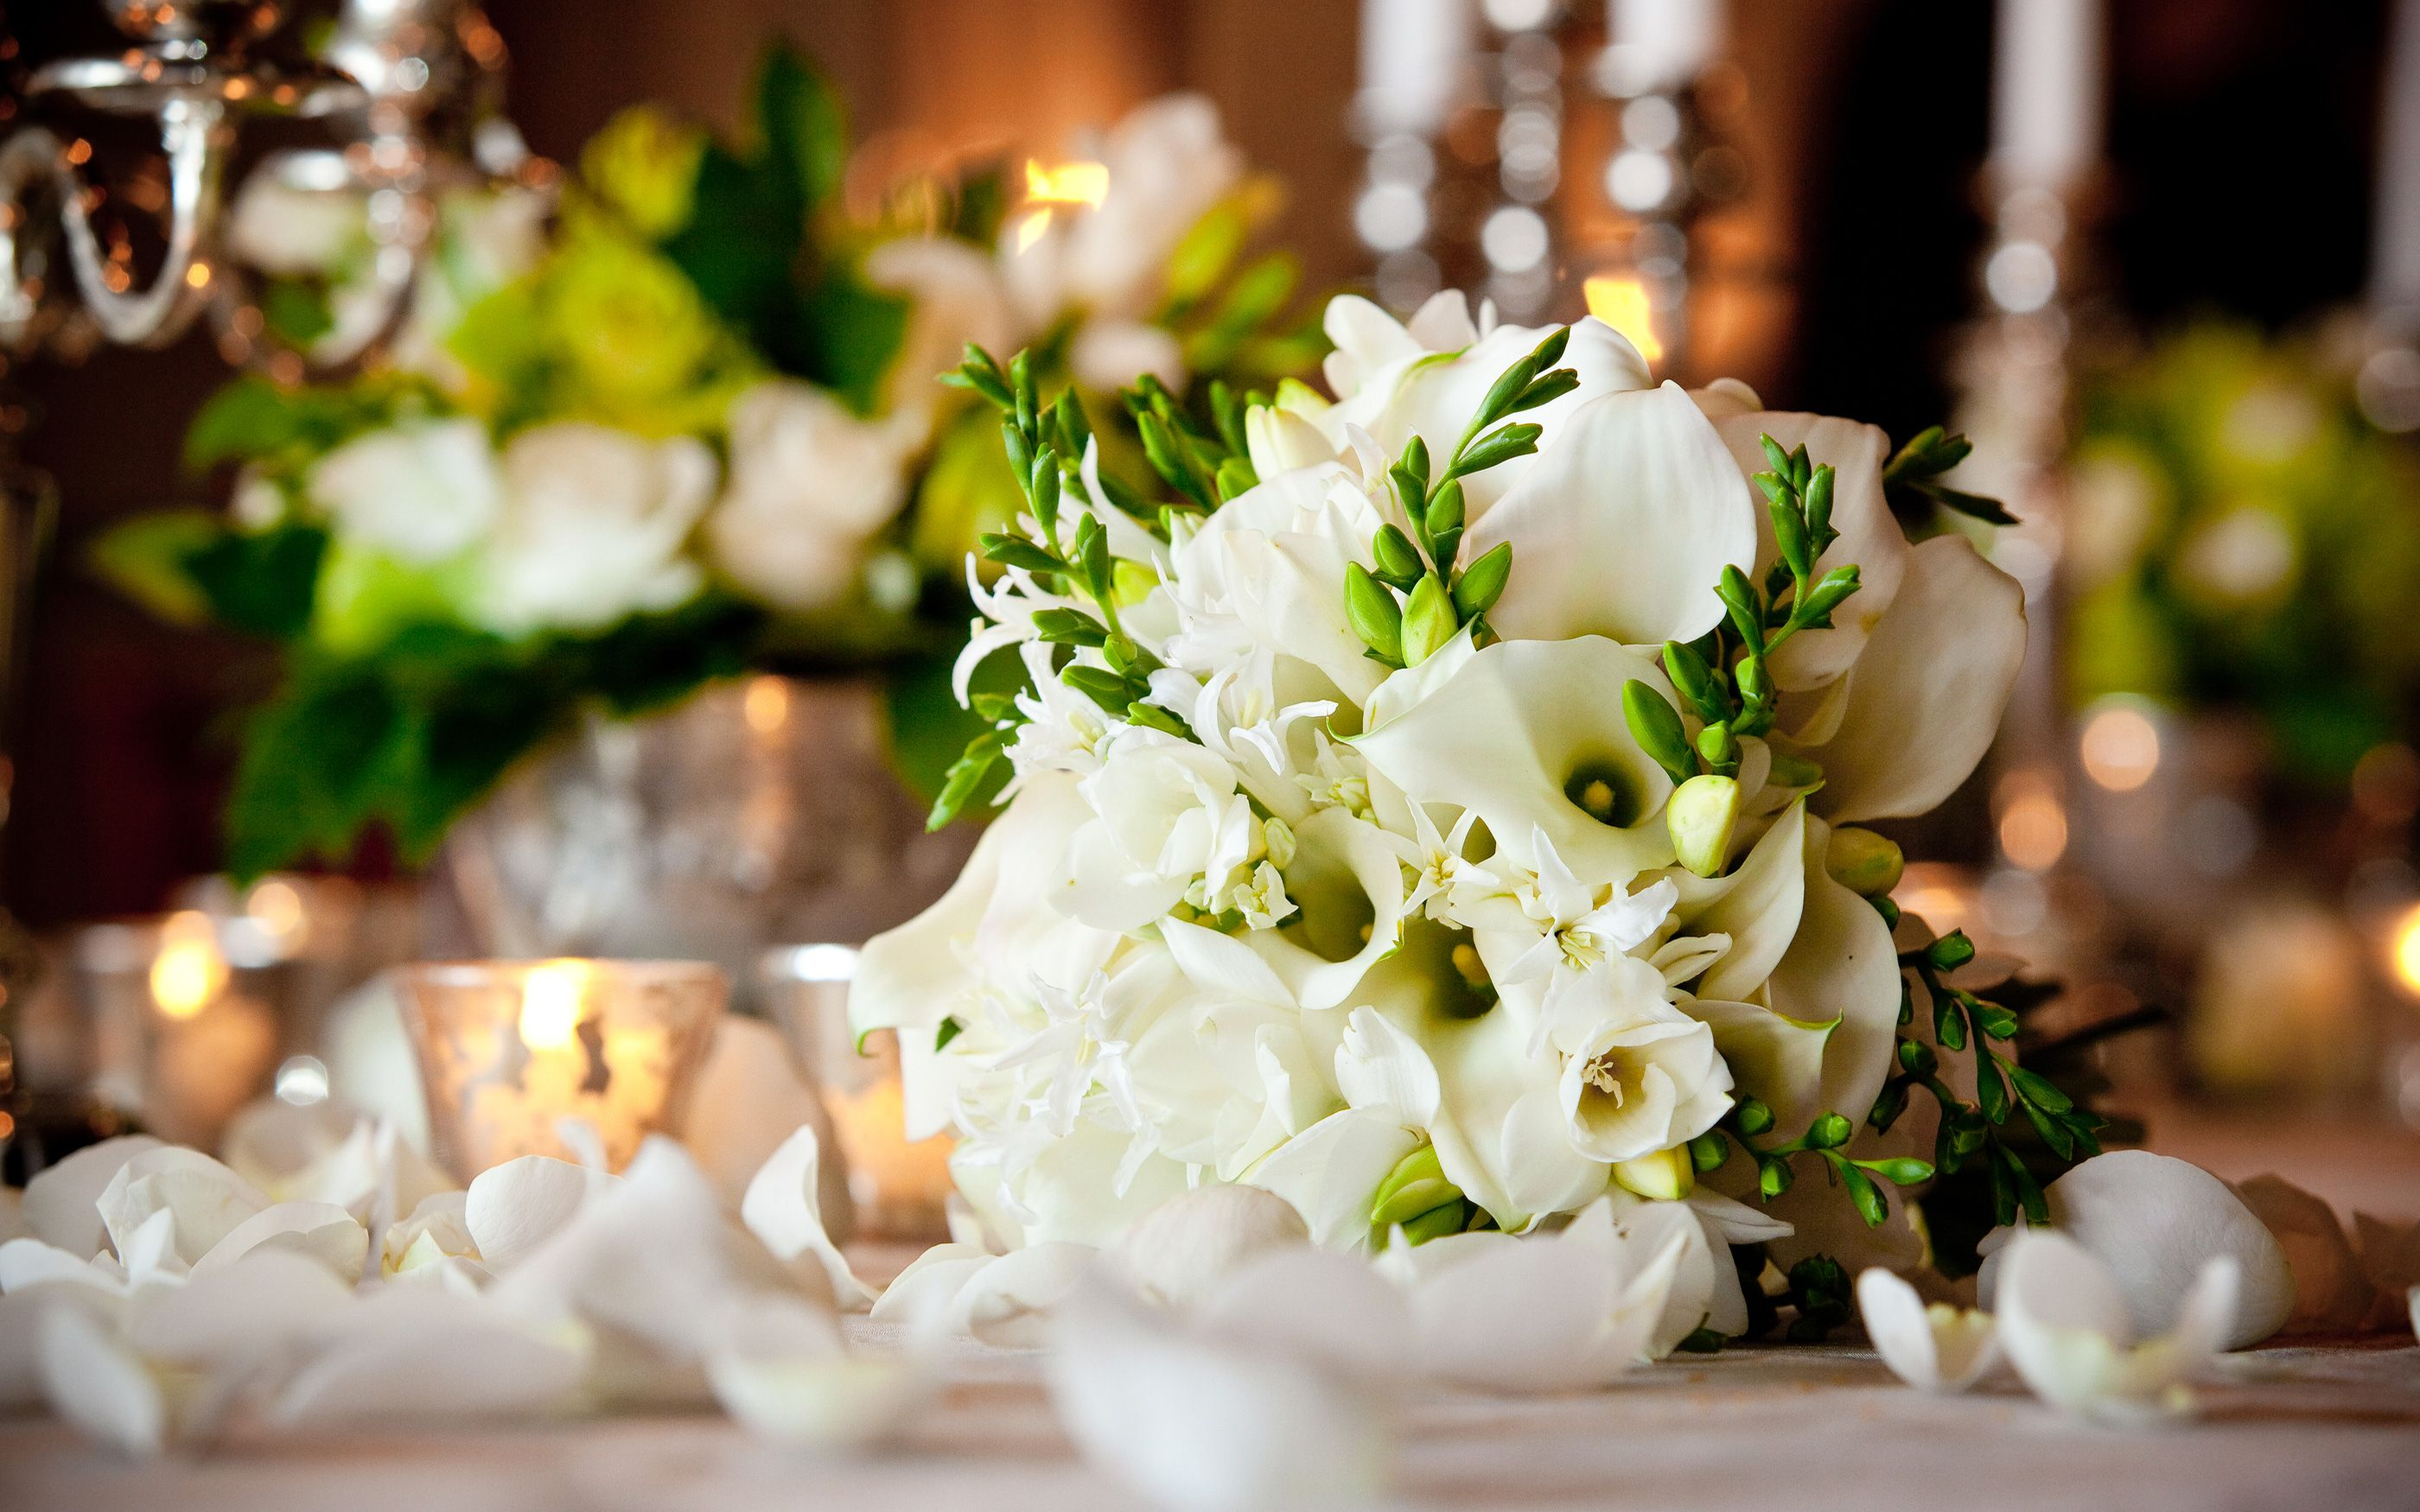 Use Instant Wedding Speeches And Impress People (With